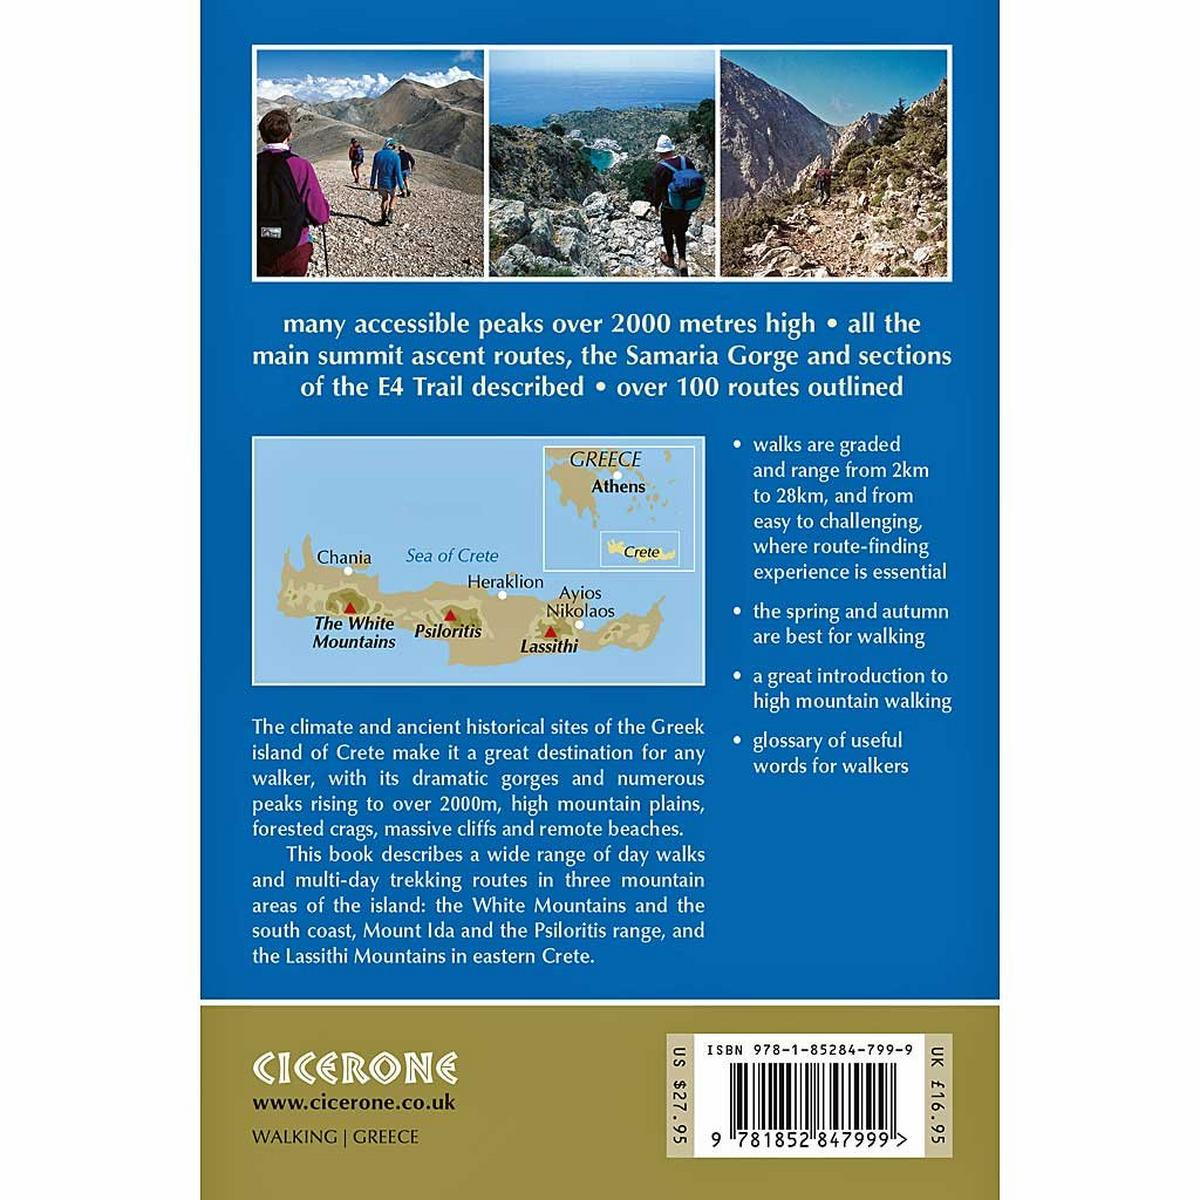 Cicerone Guide Book: Walks and Treks in the High Mountains of Crete